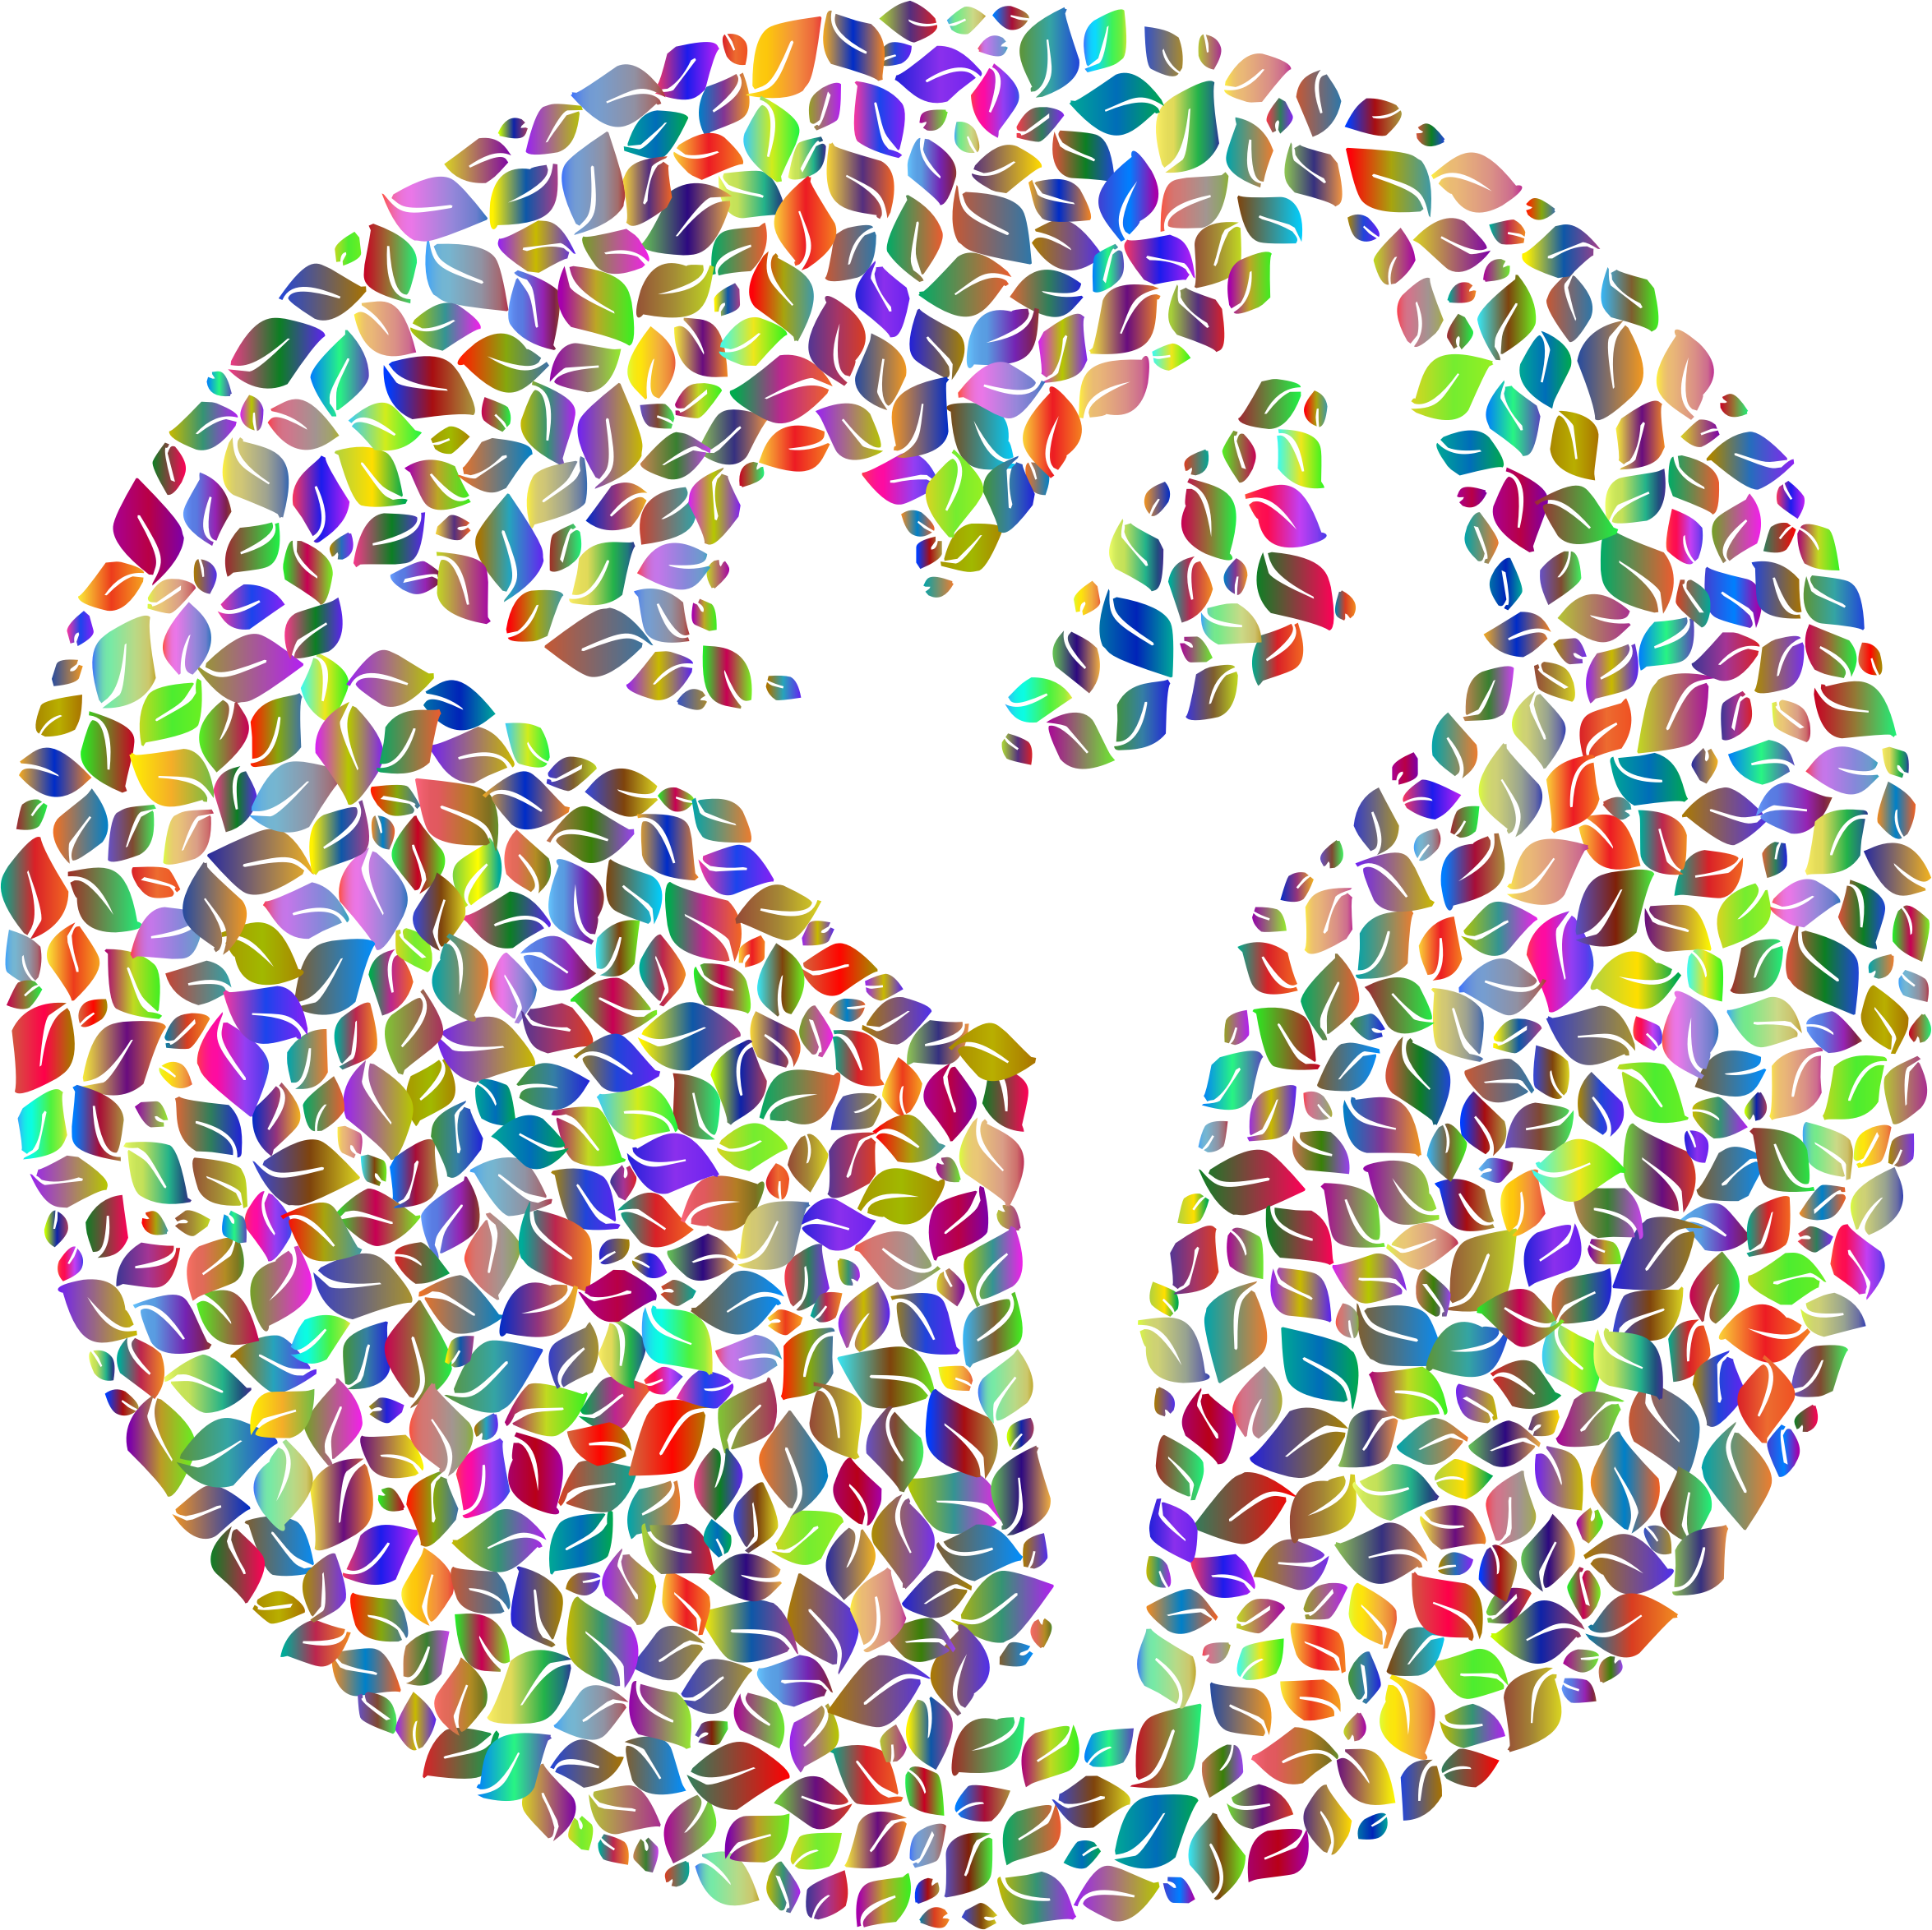 Negative Space Yoga Leaves Polyprismatic No BG by GDJ